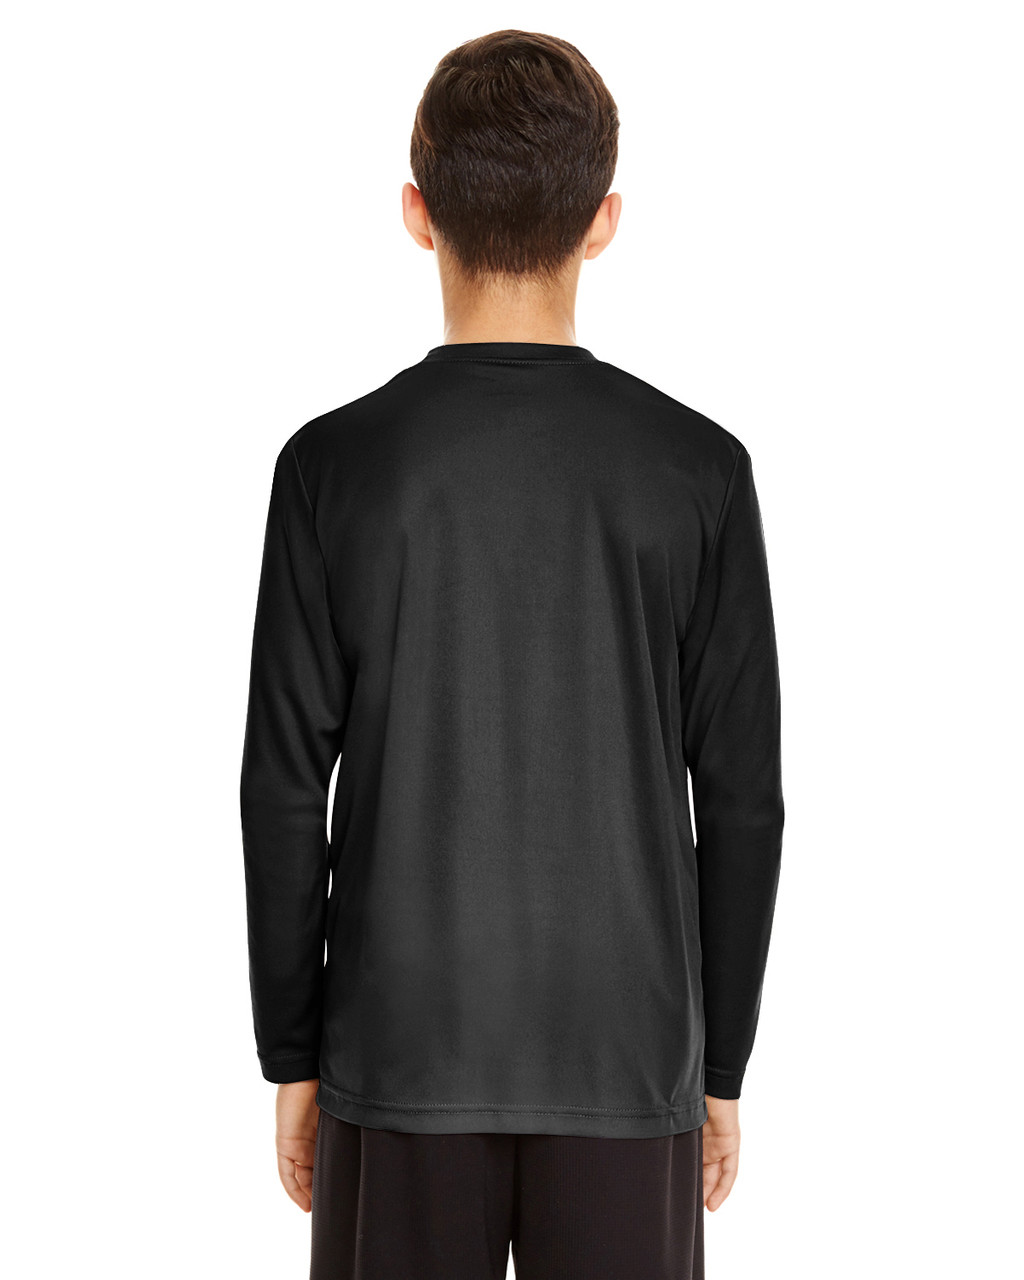 Black - Back, TT11YL Team365 Youth Zone Performance Long Sleeve T-shirt | BlankClothing.ca